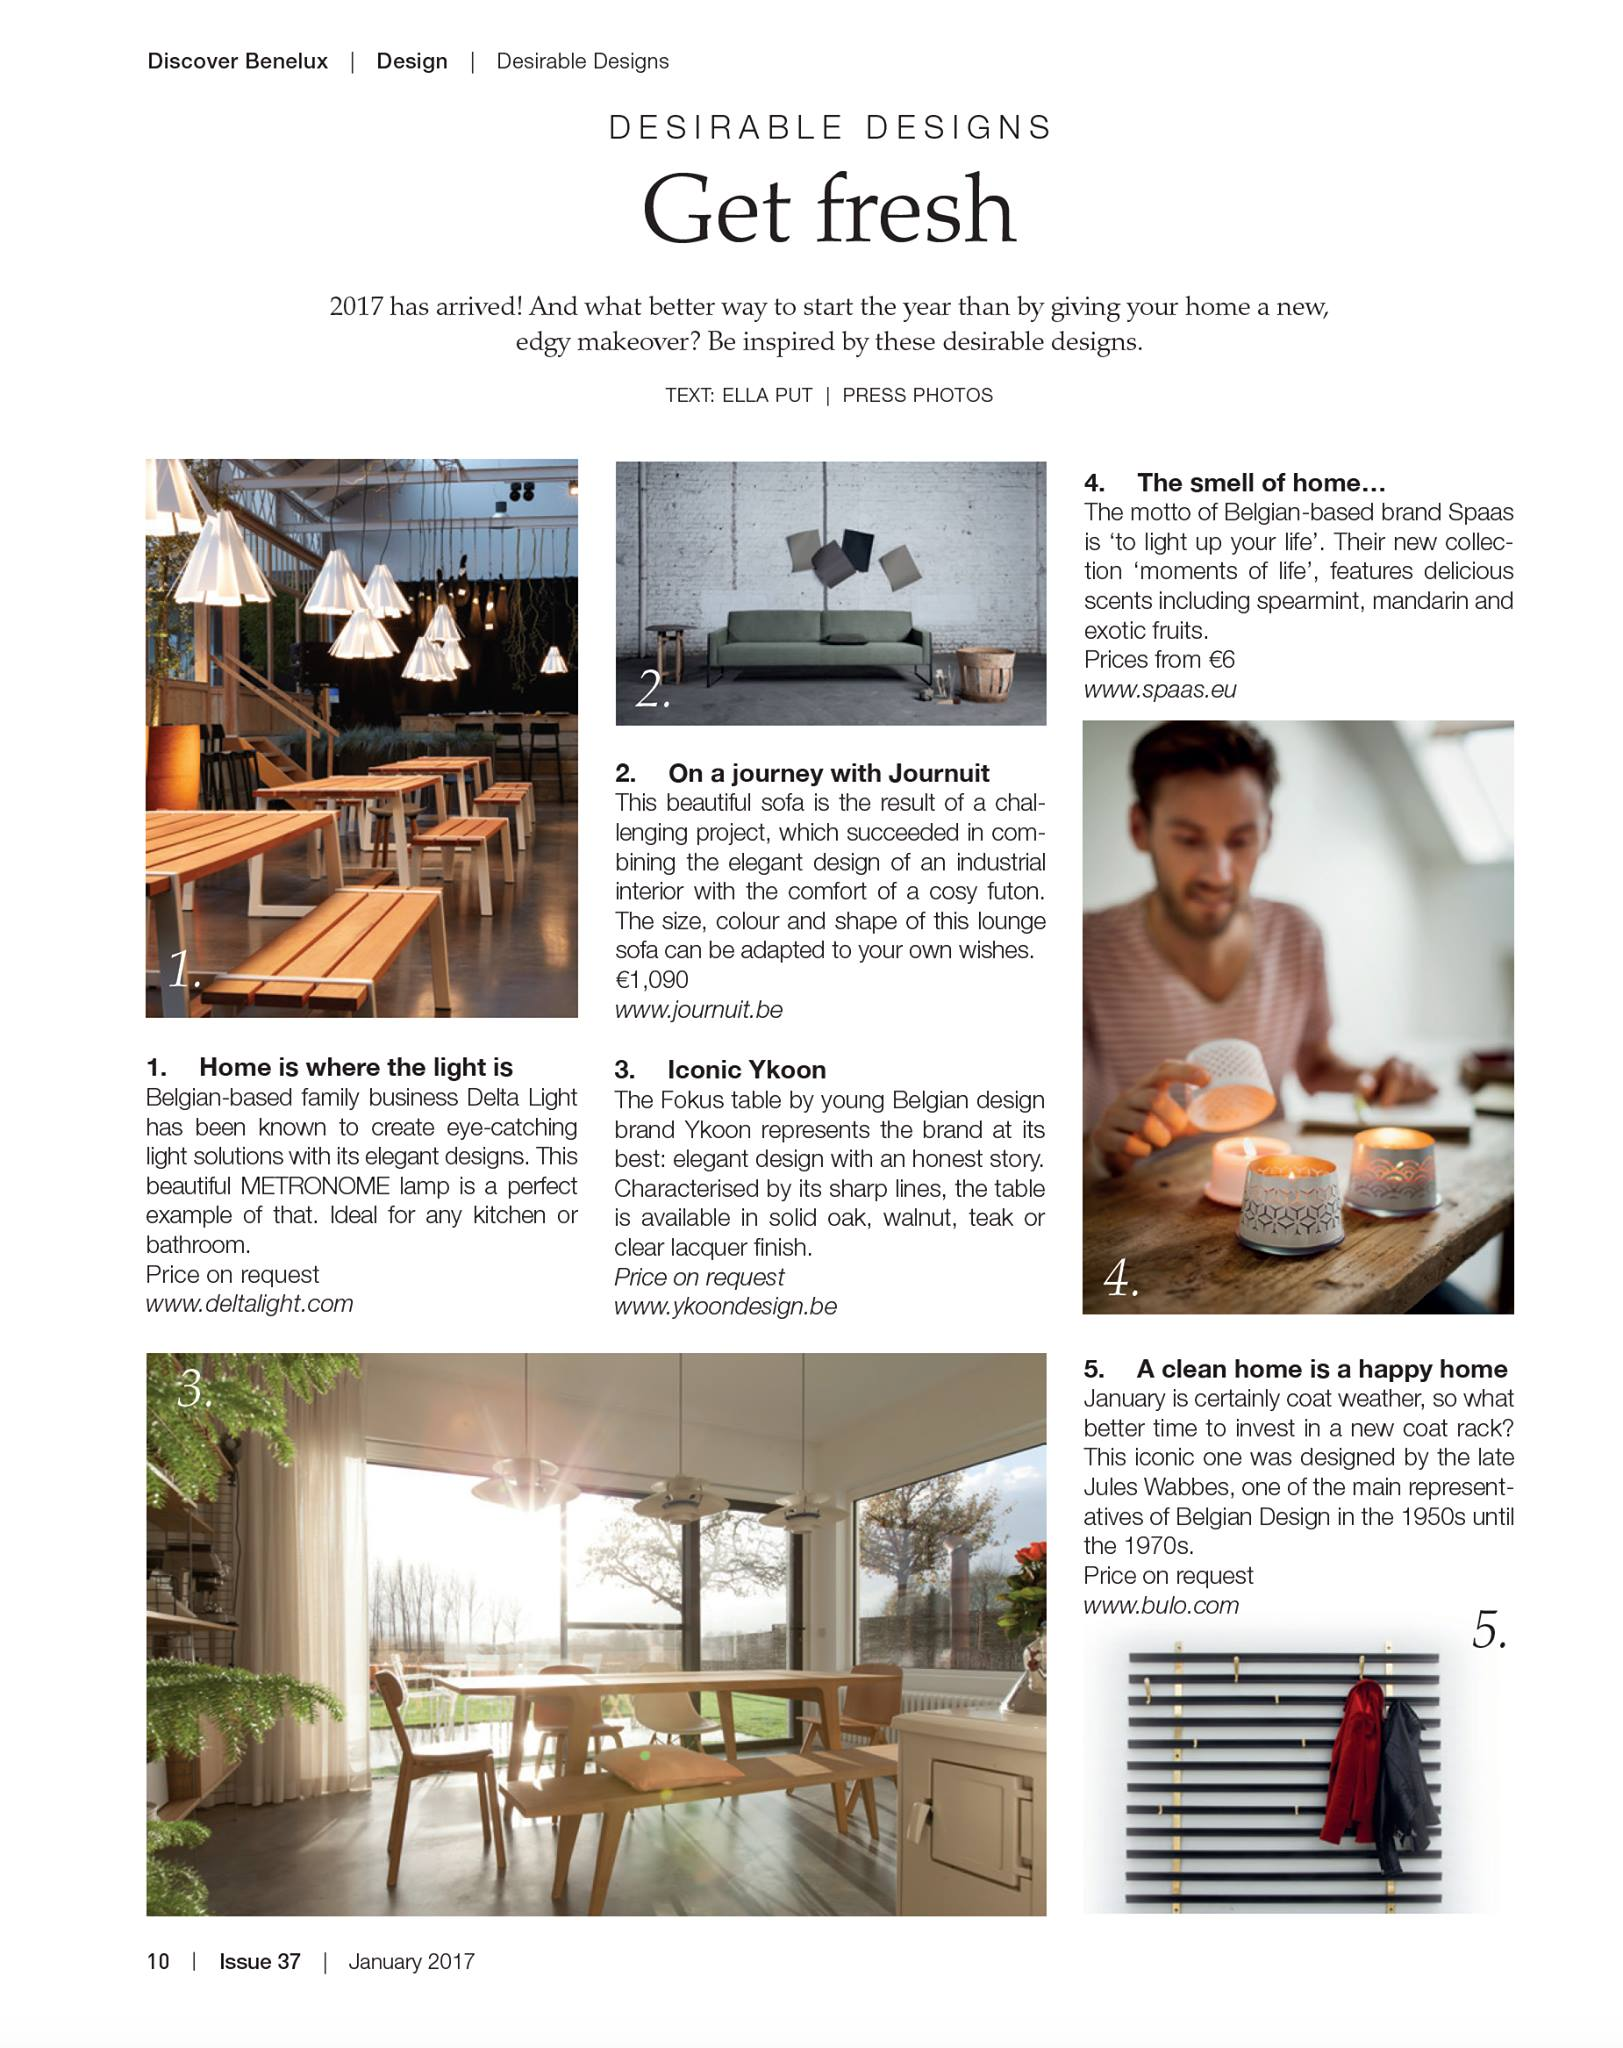 DISCOVER BENELUX 01/2017